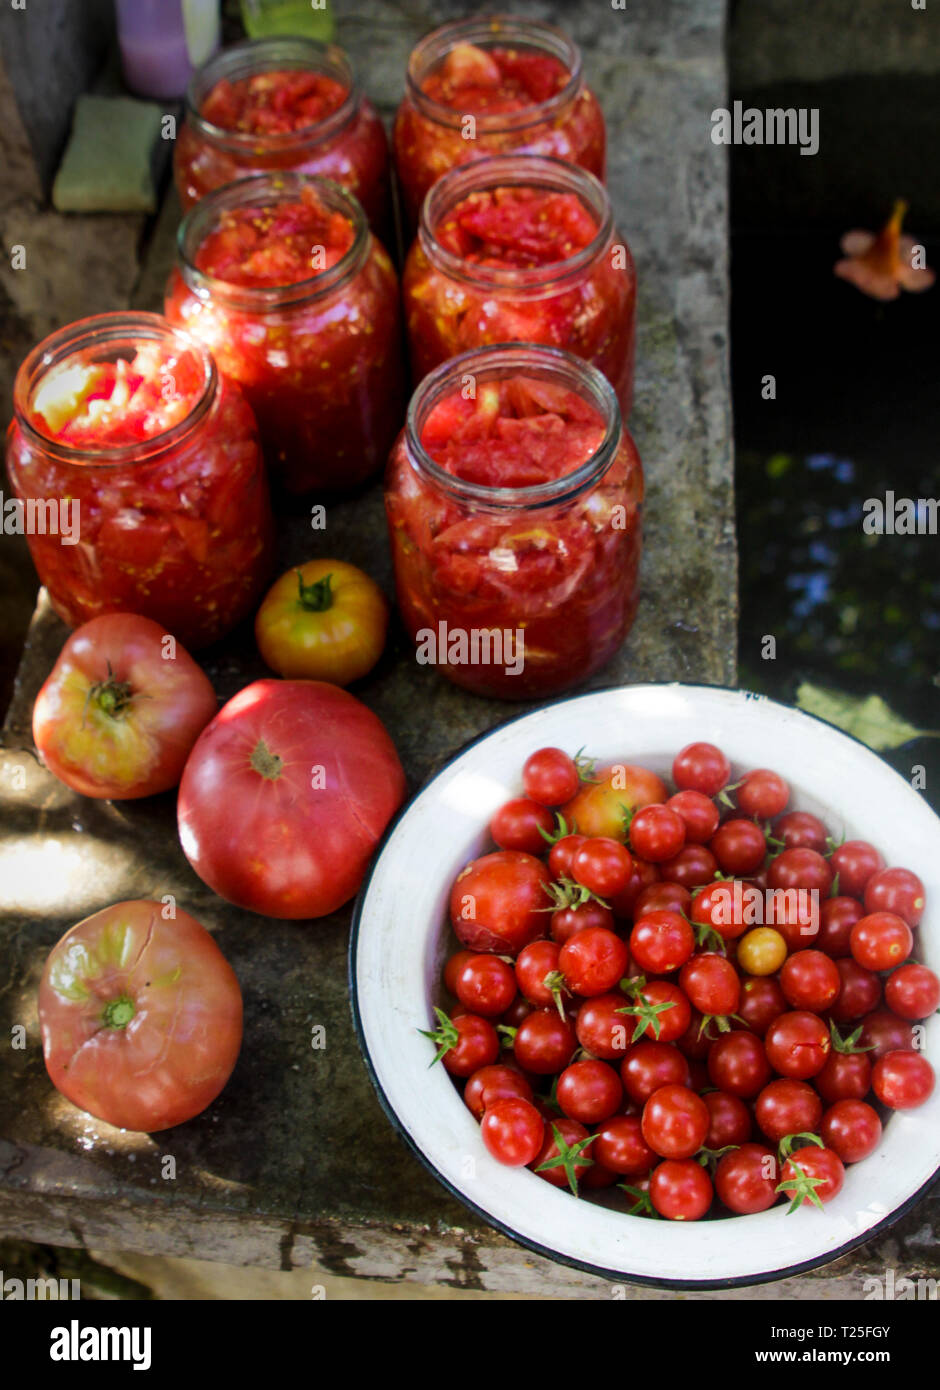 Preserving tomatoes in jars for the winter, Bulgaria - Stock Image